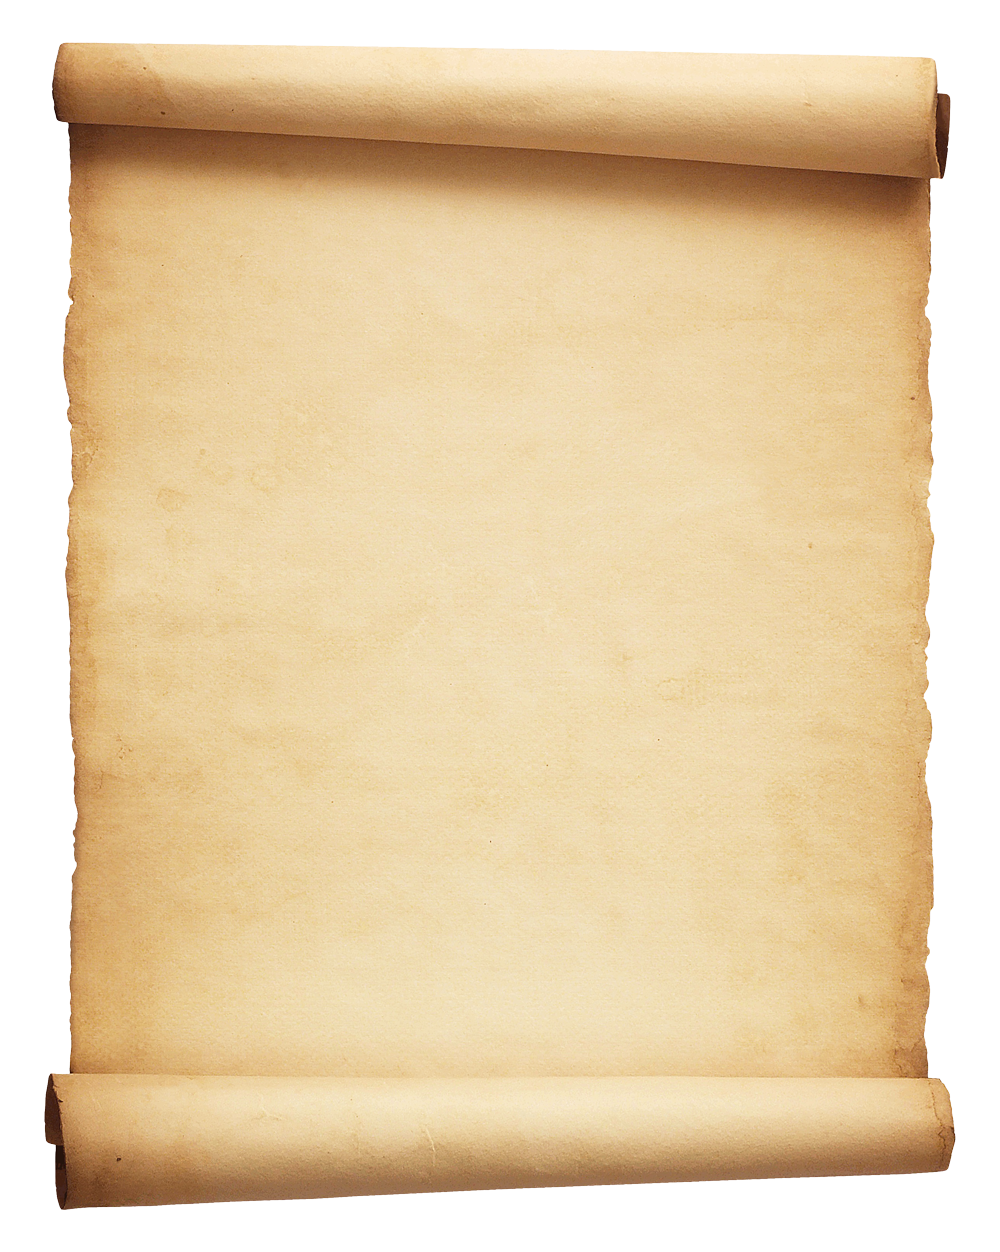 Parchment png. Scroll image purepng free